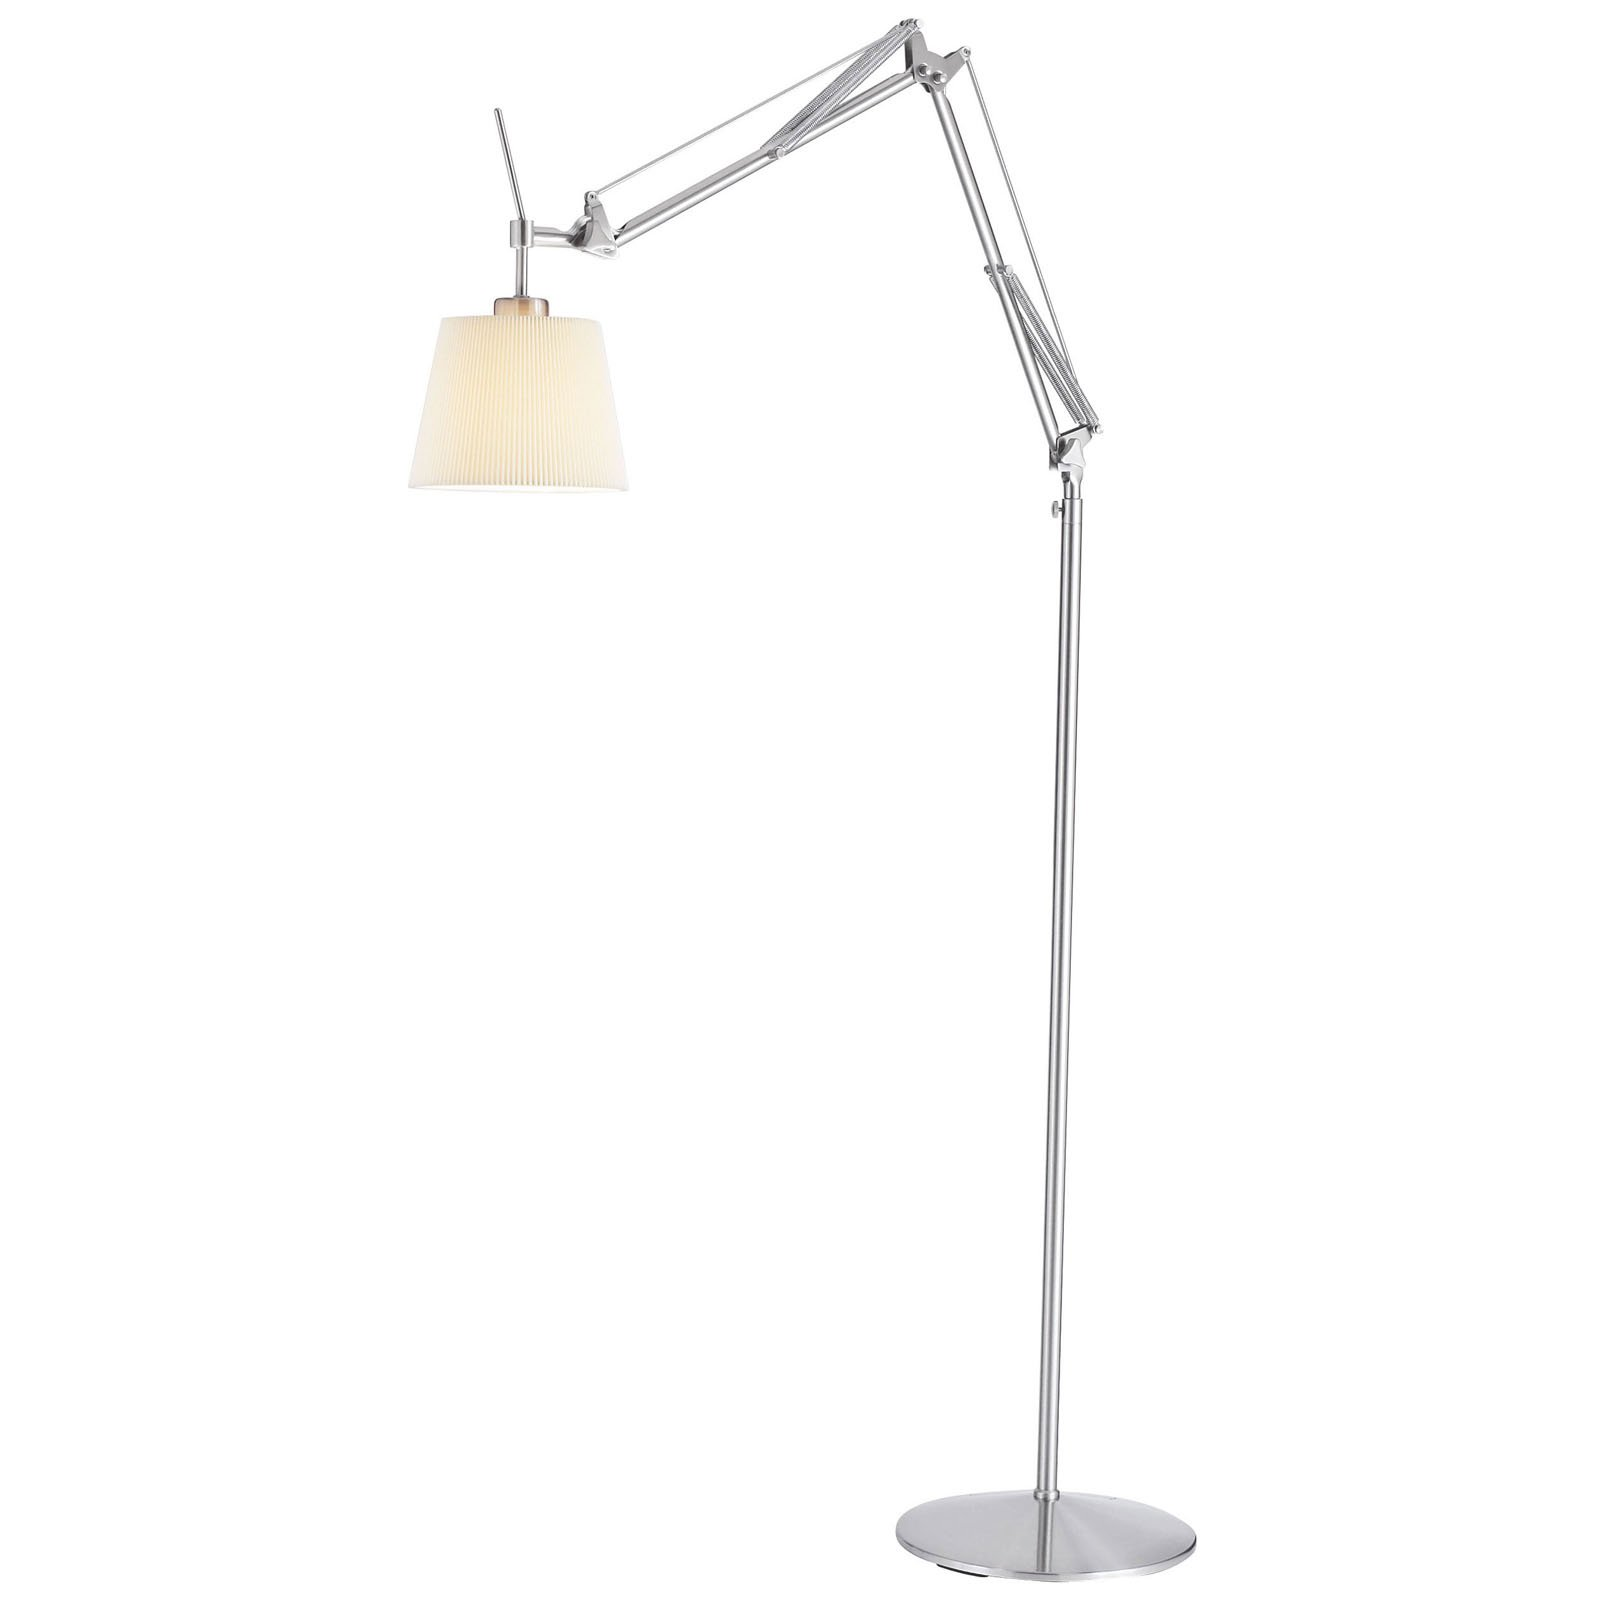 Adesso Architect Floor Lamp Brushed Steel by Adesso Inc